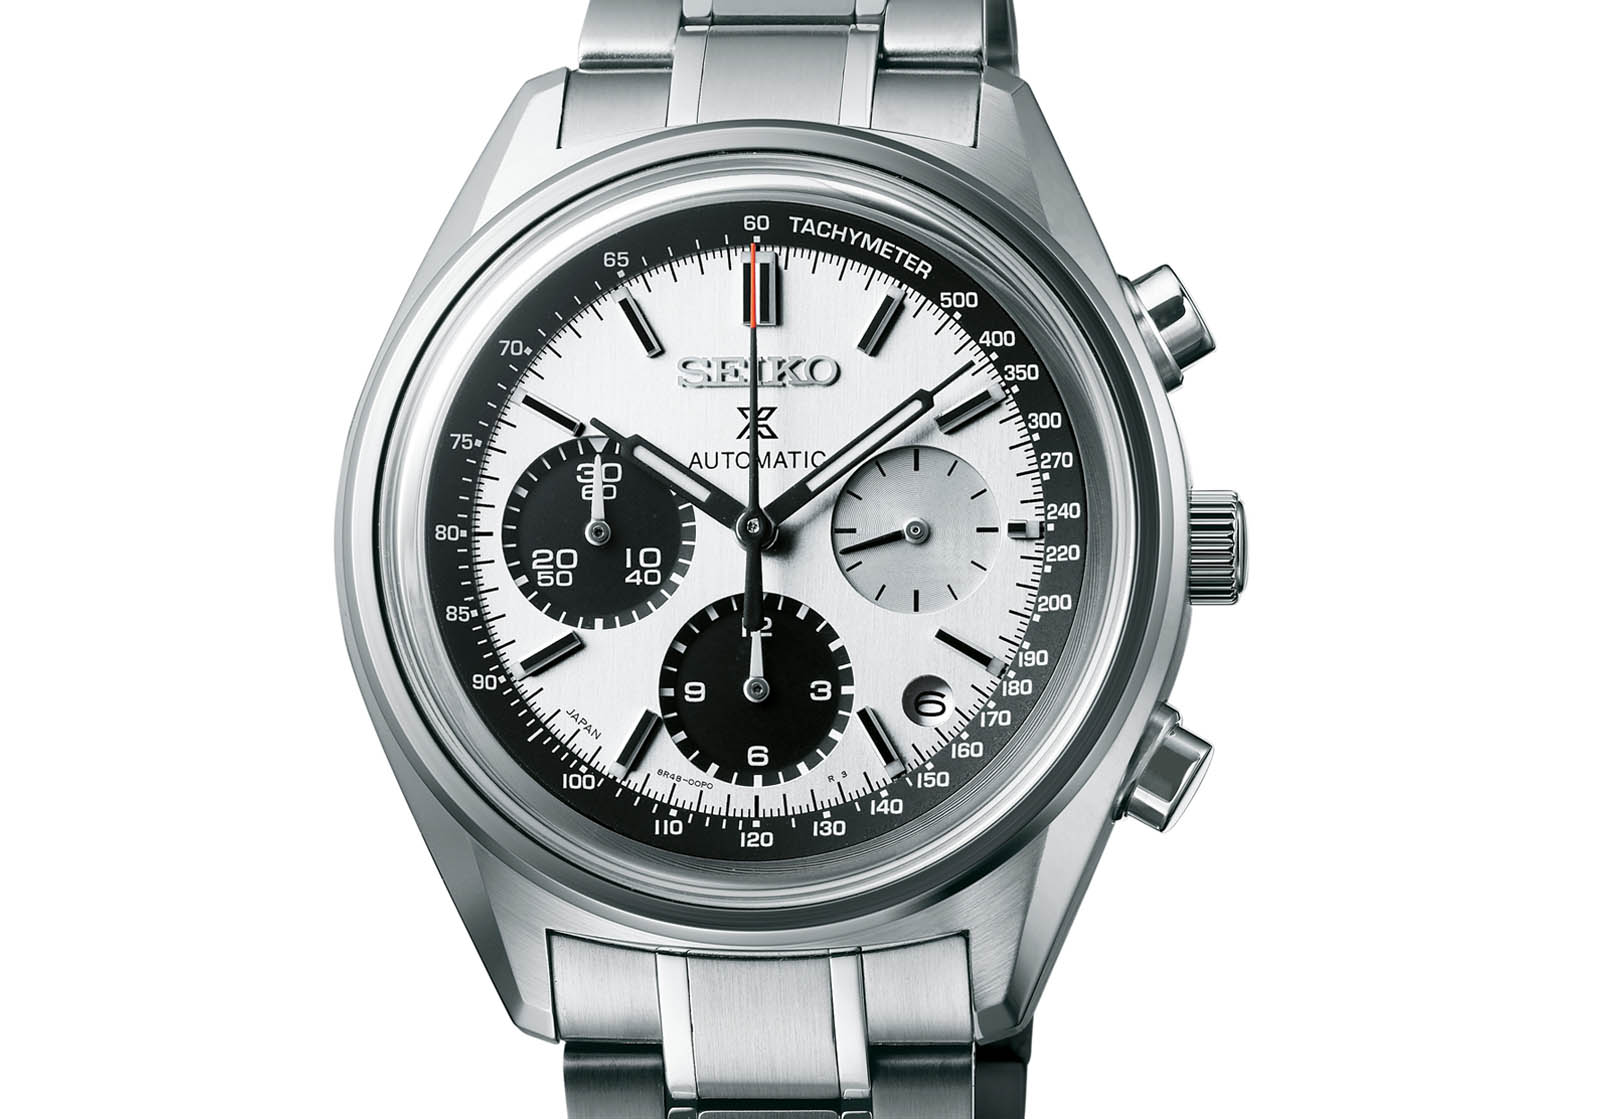 Seiko Prospex Chronograph 50th Anniversary Limited Edition ref. SRQ029